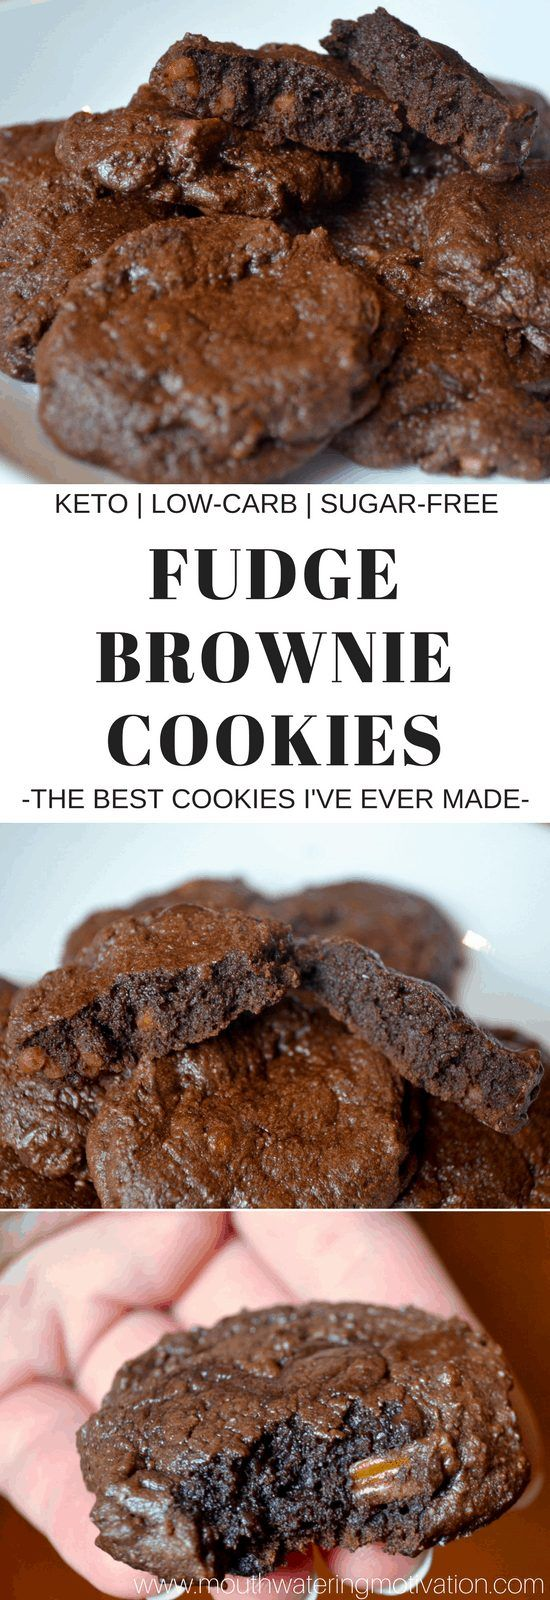 Keto Brownie Cookies | Mouthwatering Motivation